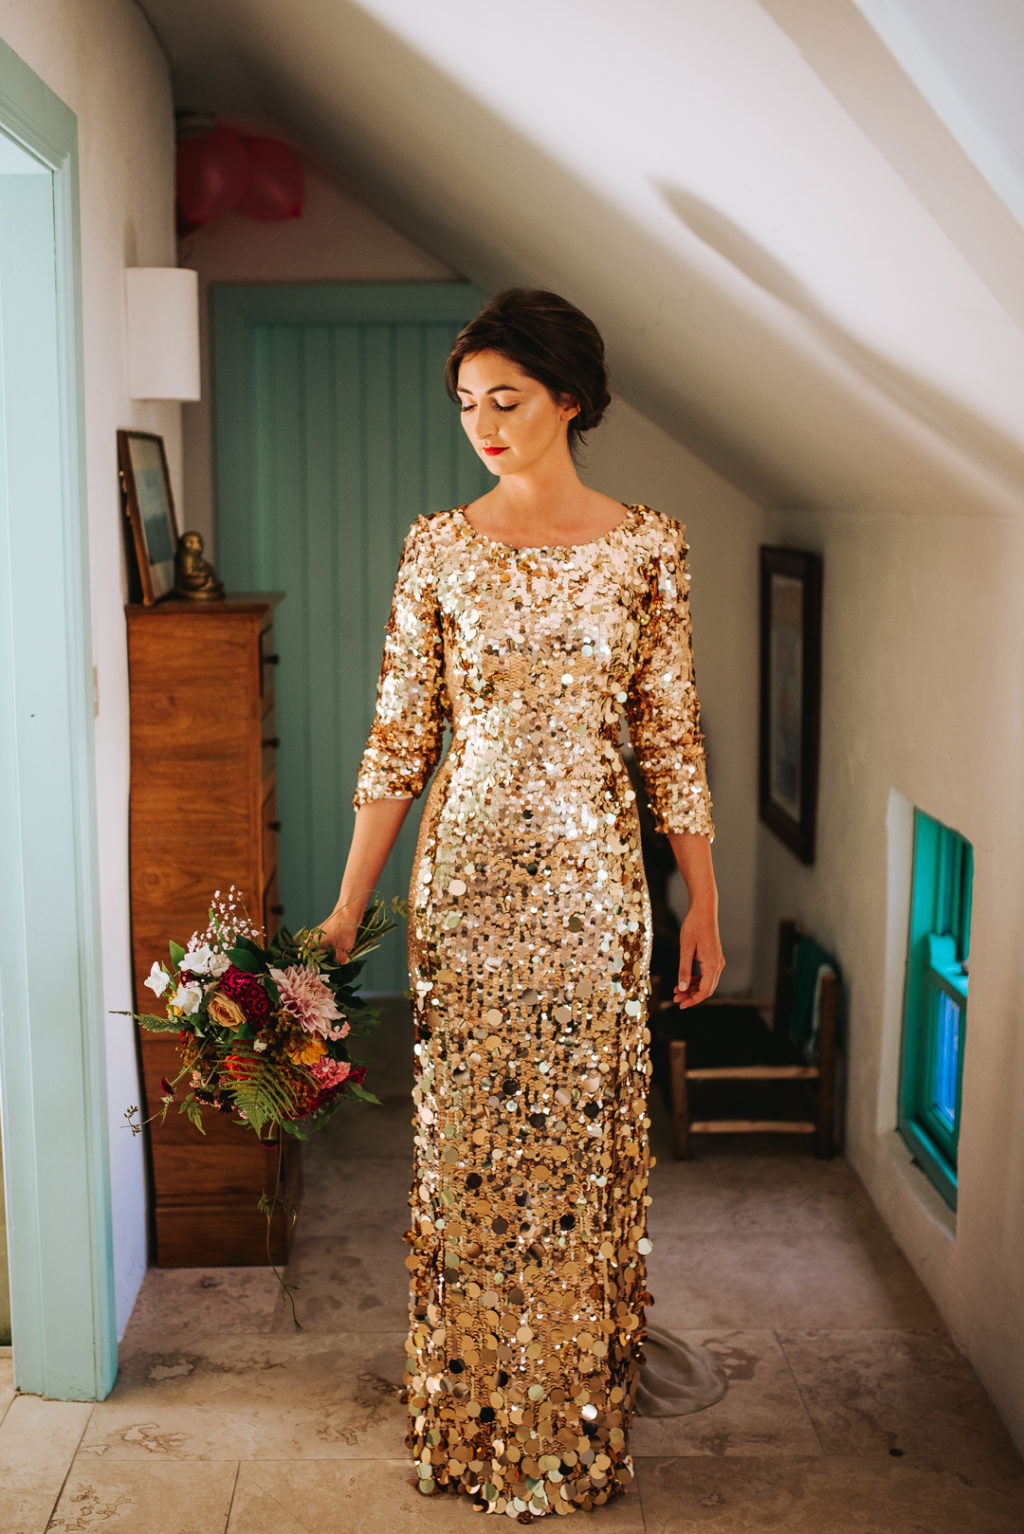 The bride was wearing a fantastic gold sequin wedding dress wiht shot sleeves